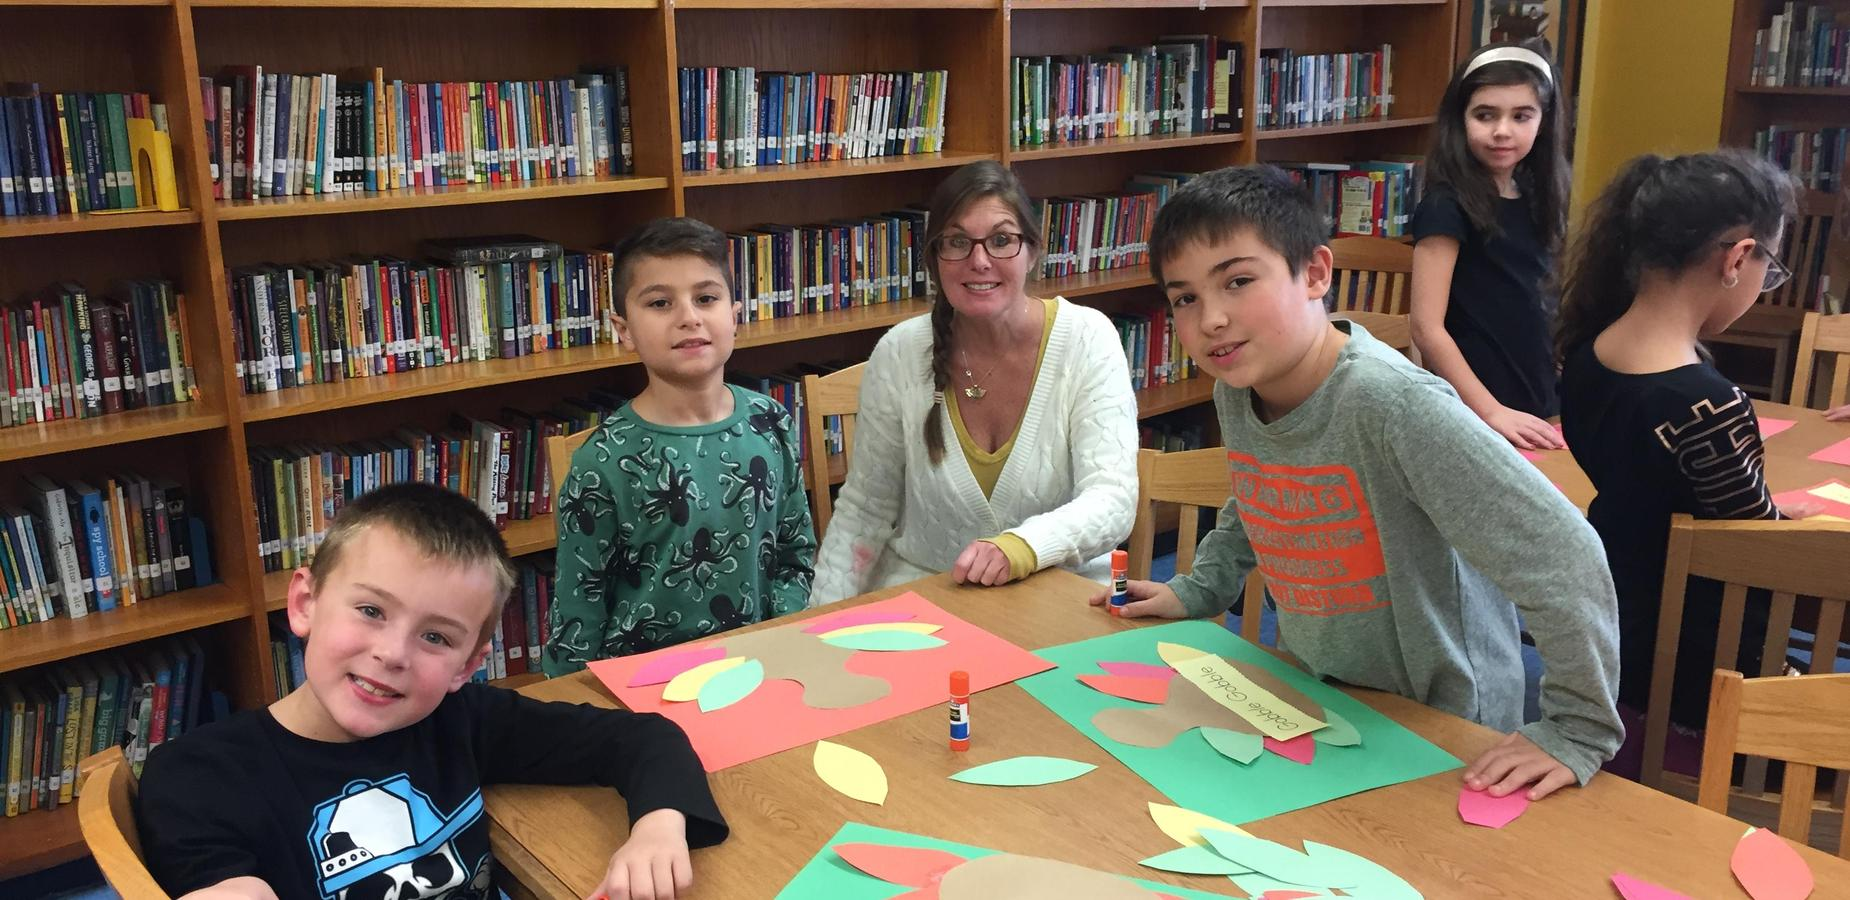 Students working on Thanksgiving crafts